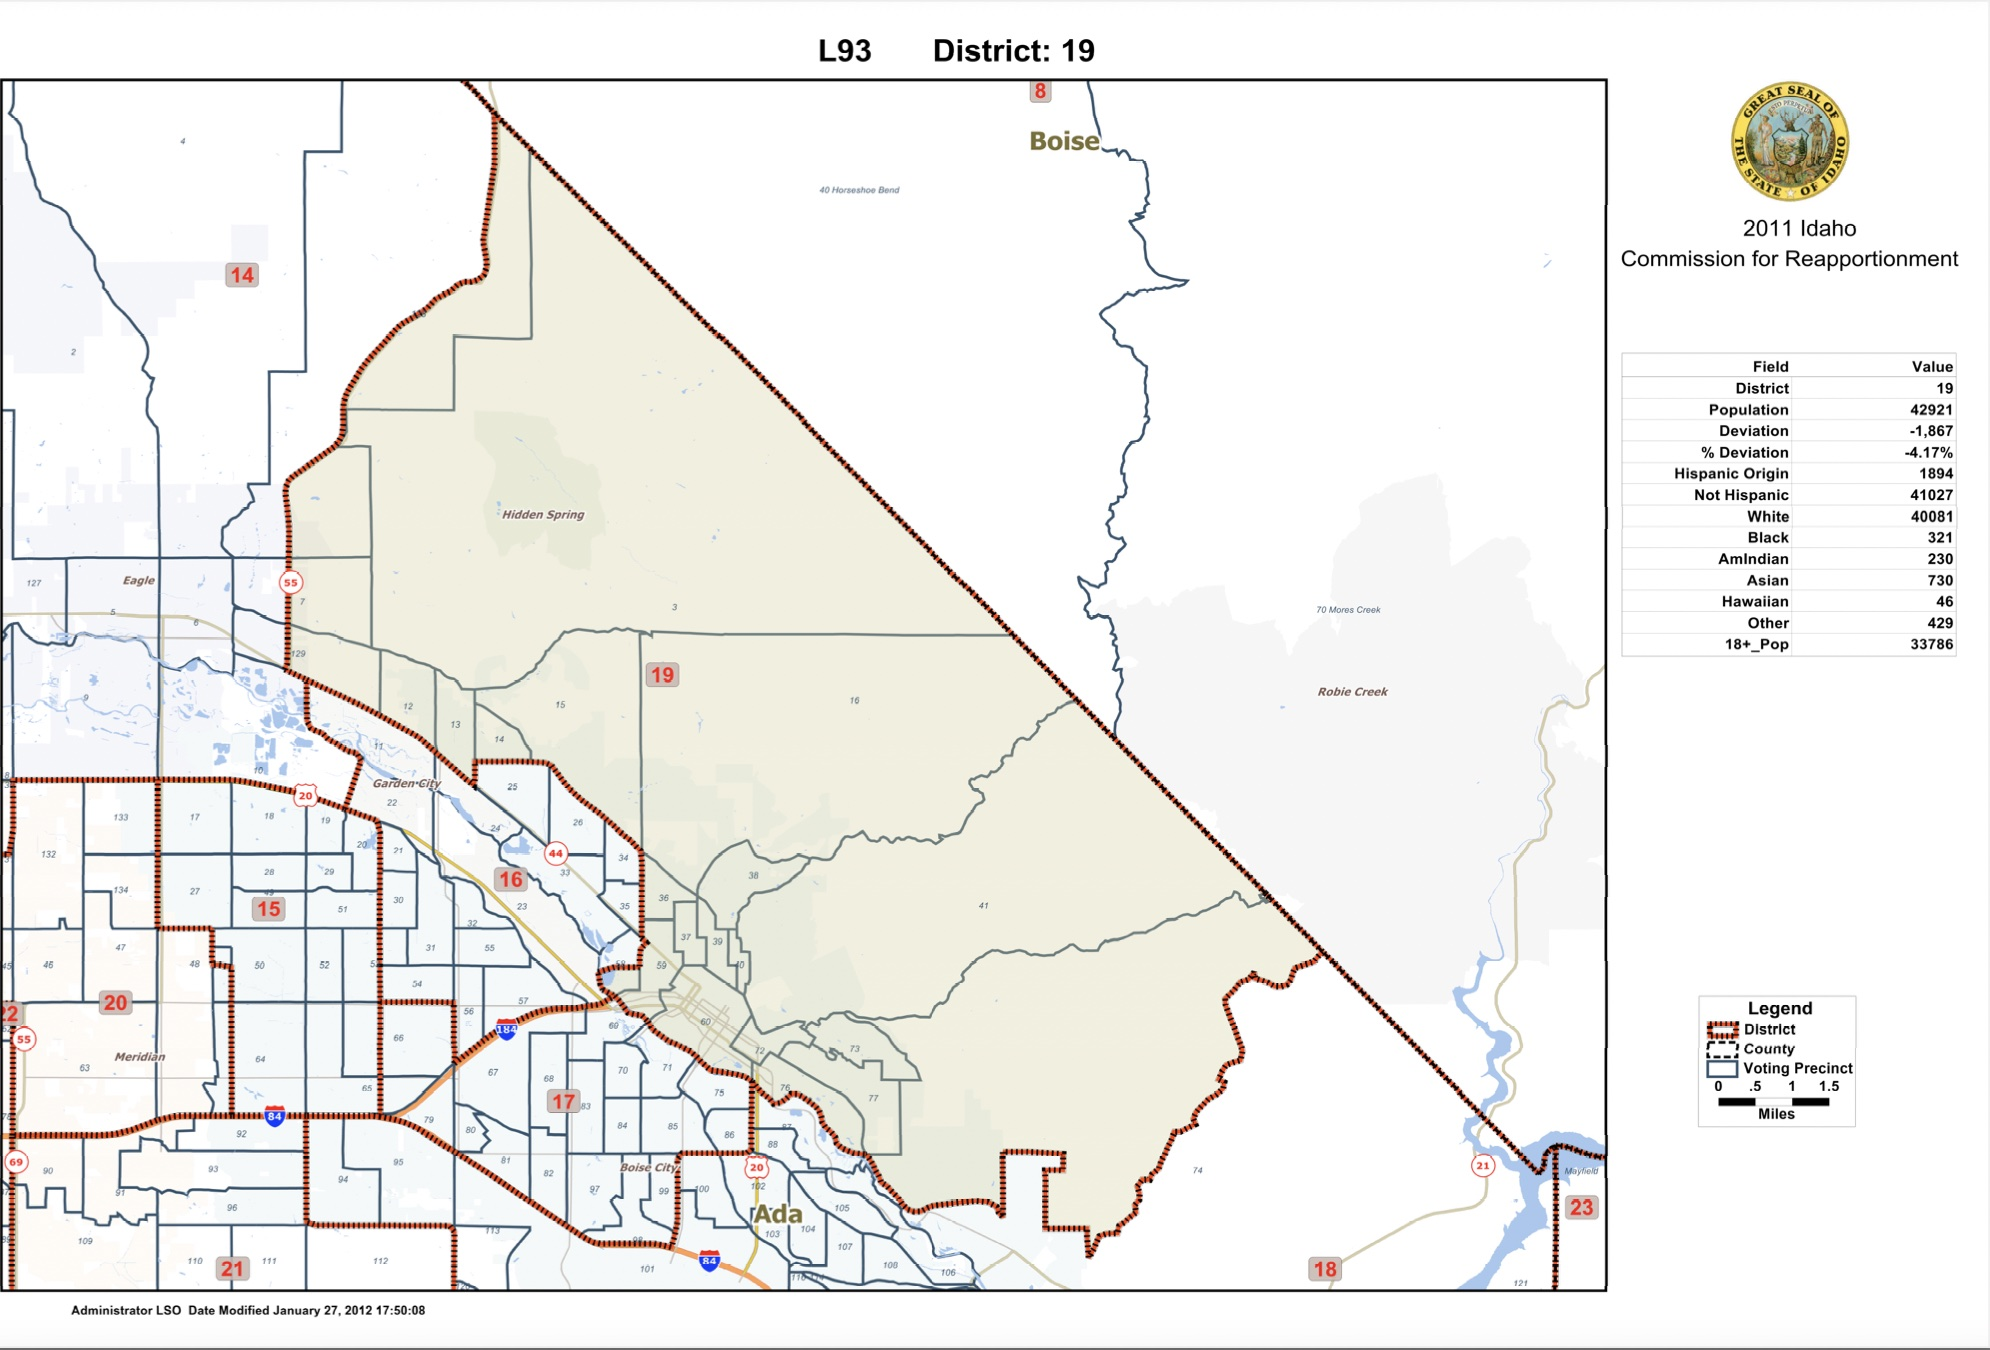 With the clock ticking, Idaho's redistricting process is about to get under way